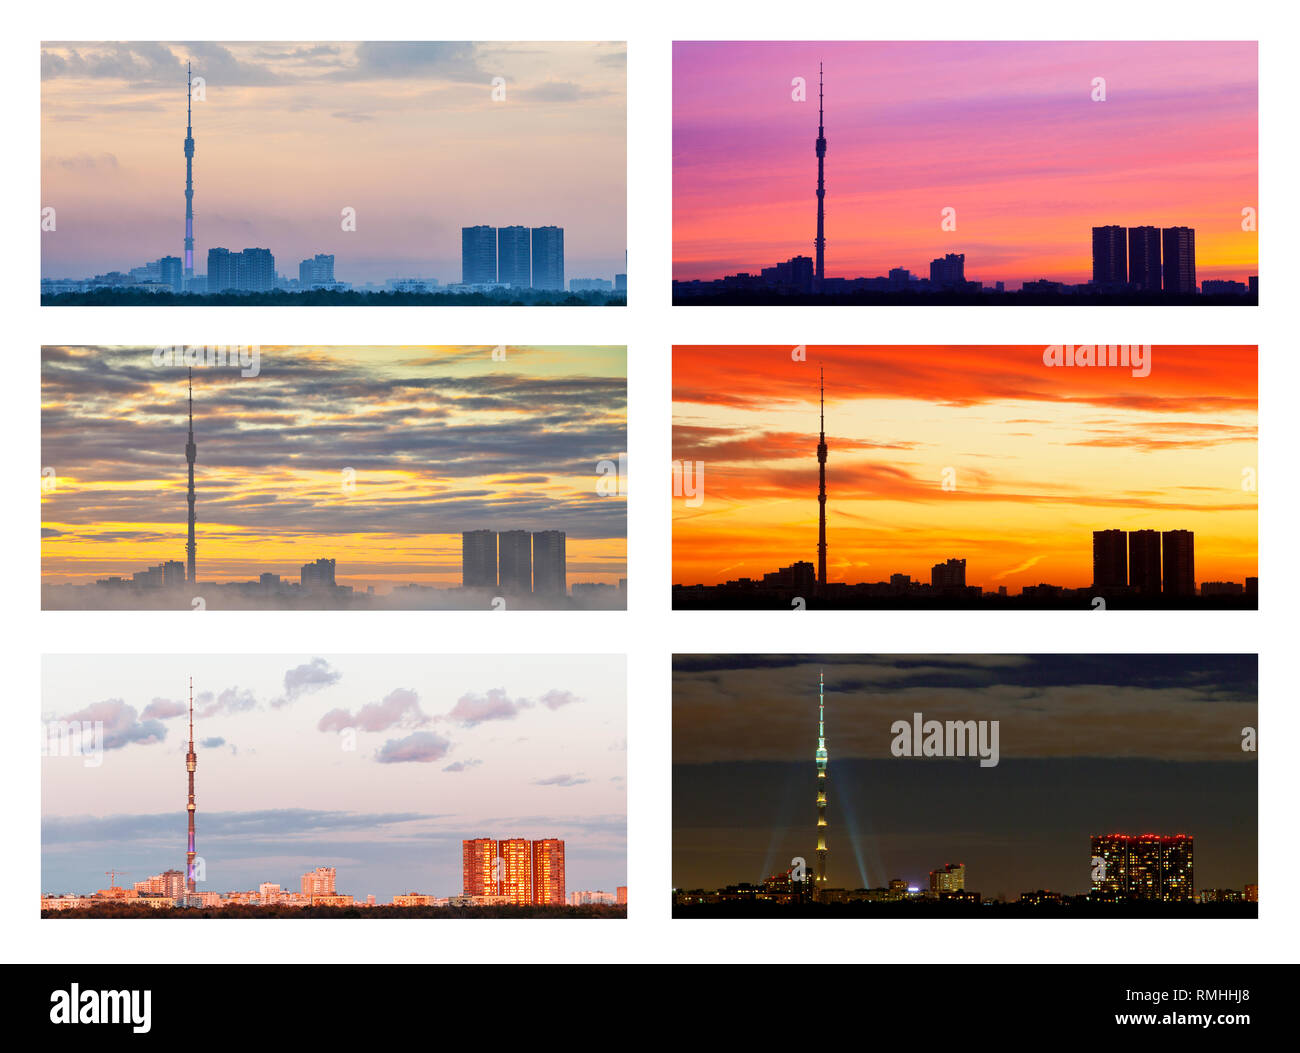 collage from various sunsets and sunrises over city - Stock Image